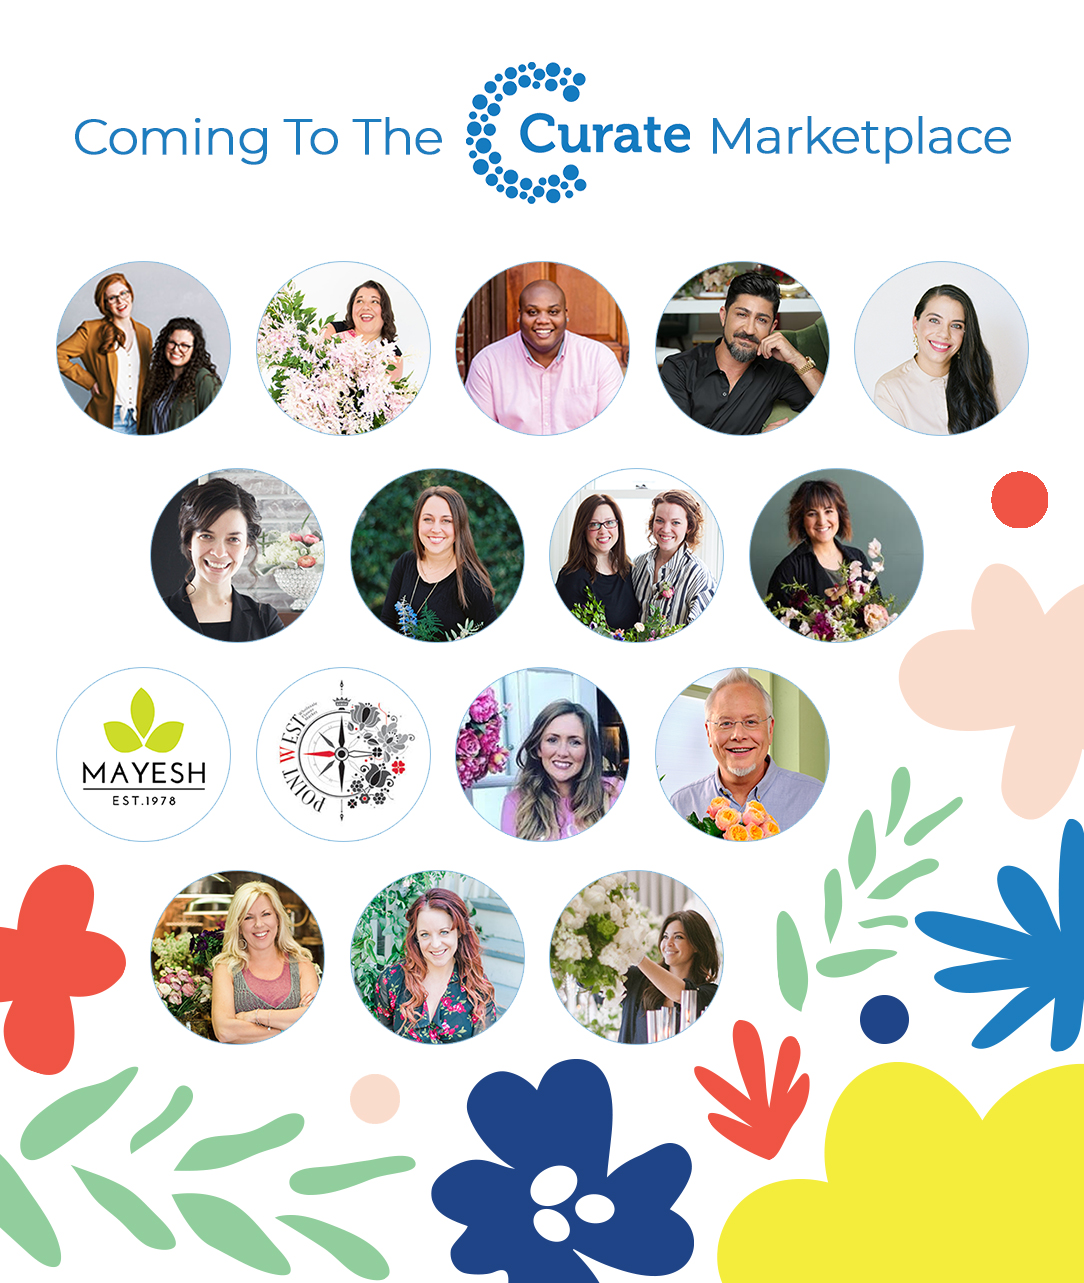 Introducing The Curate Marketplace